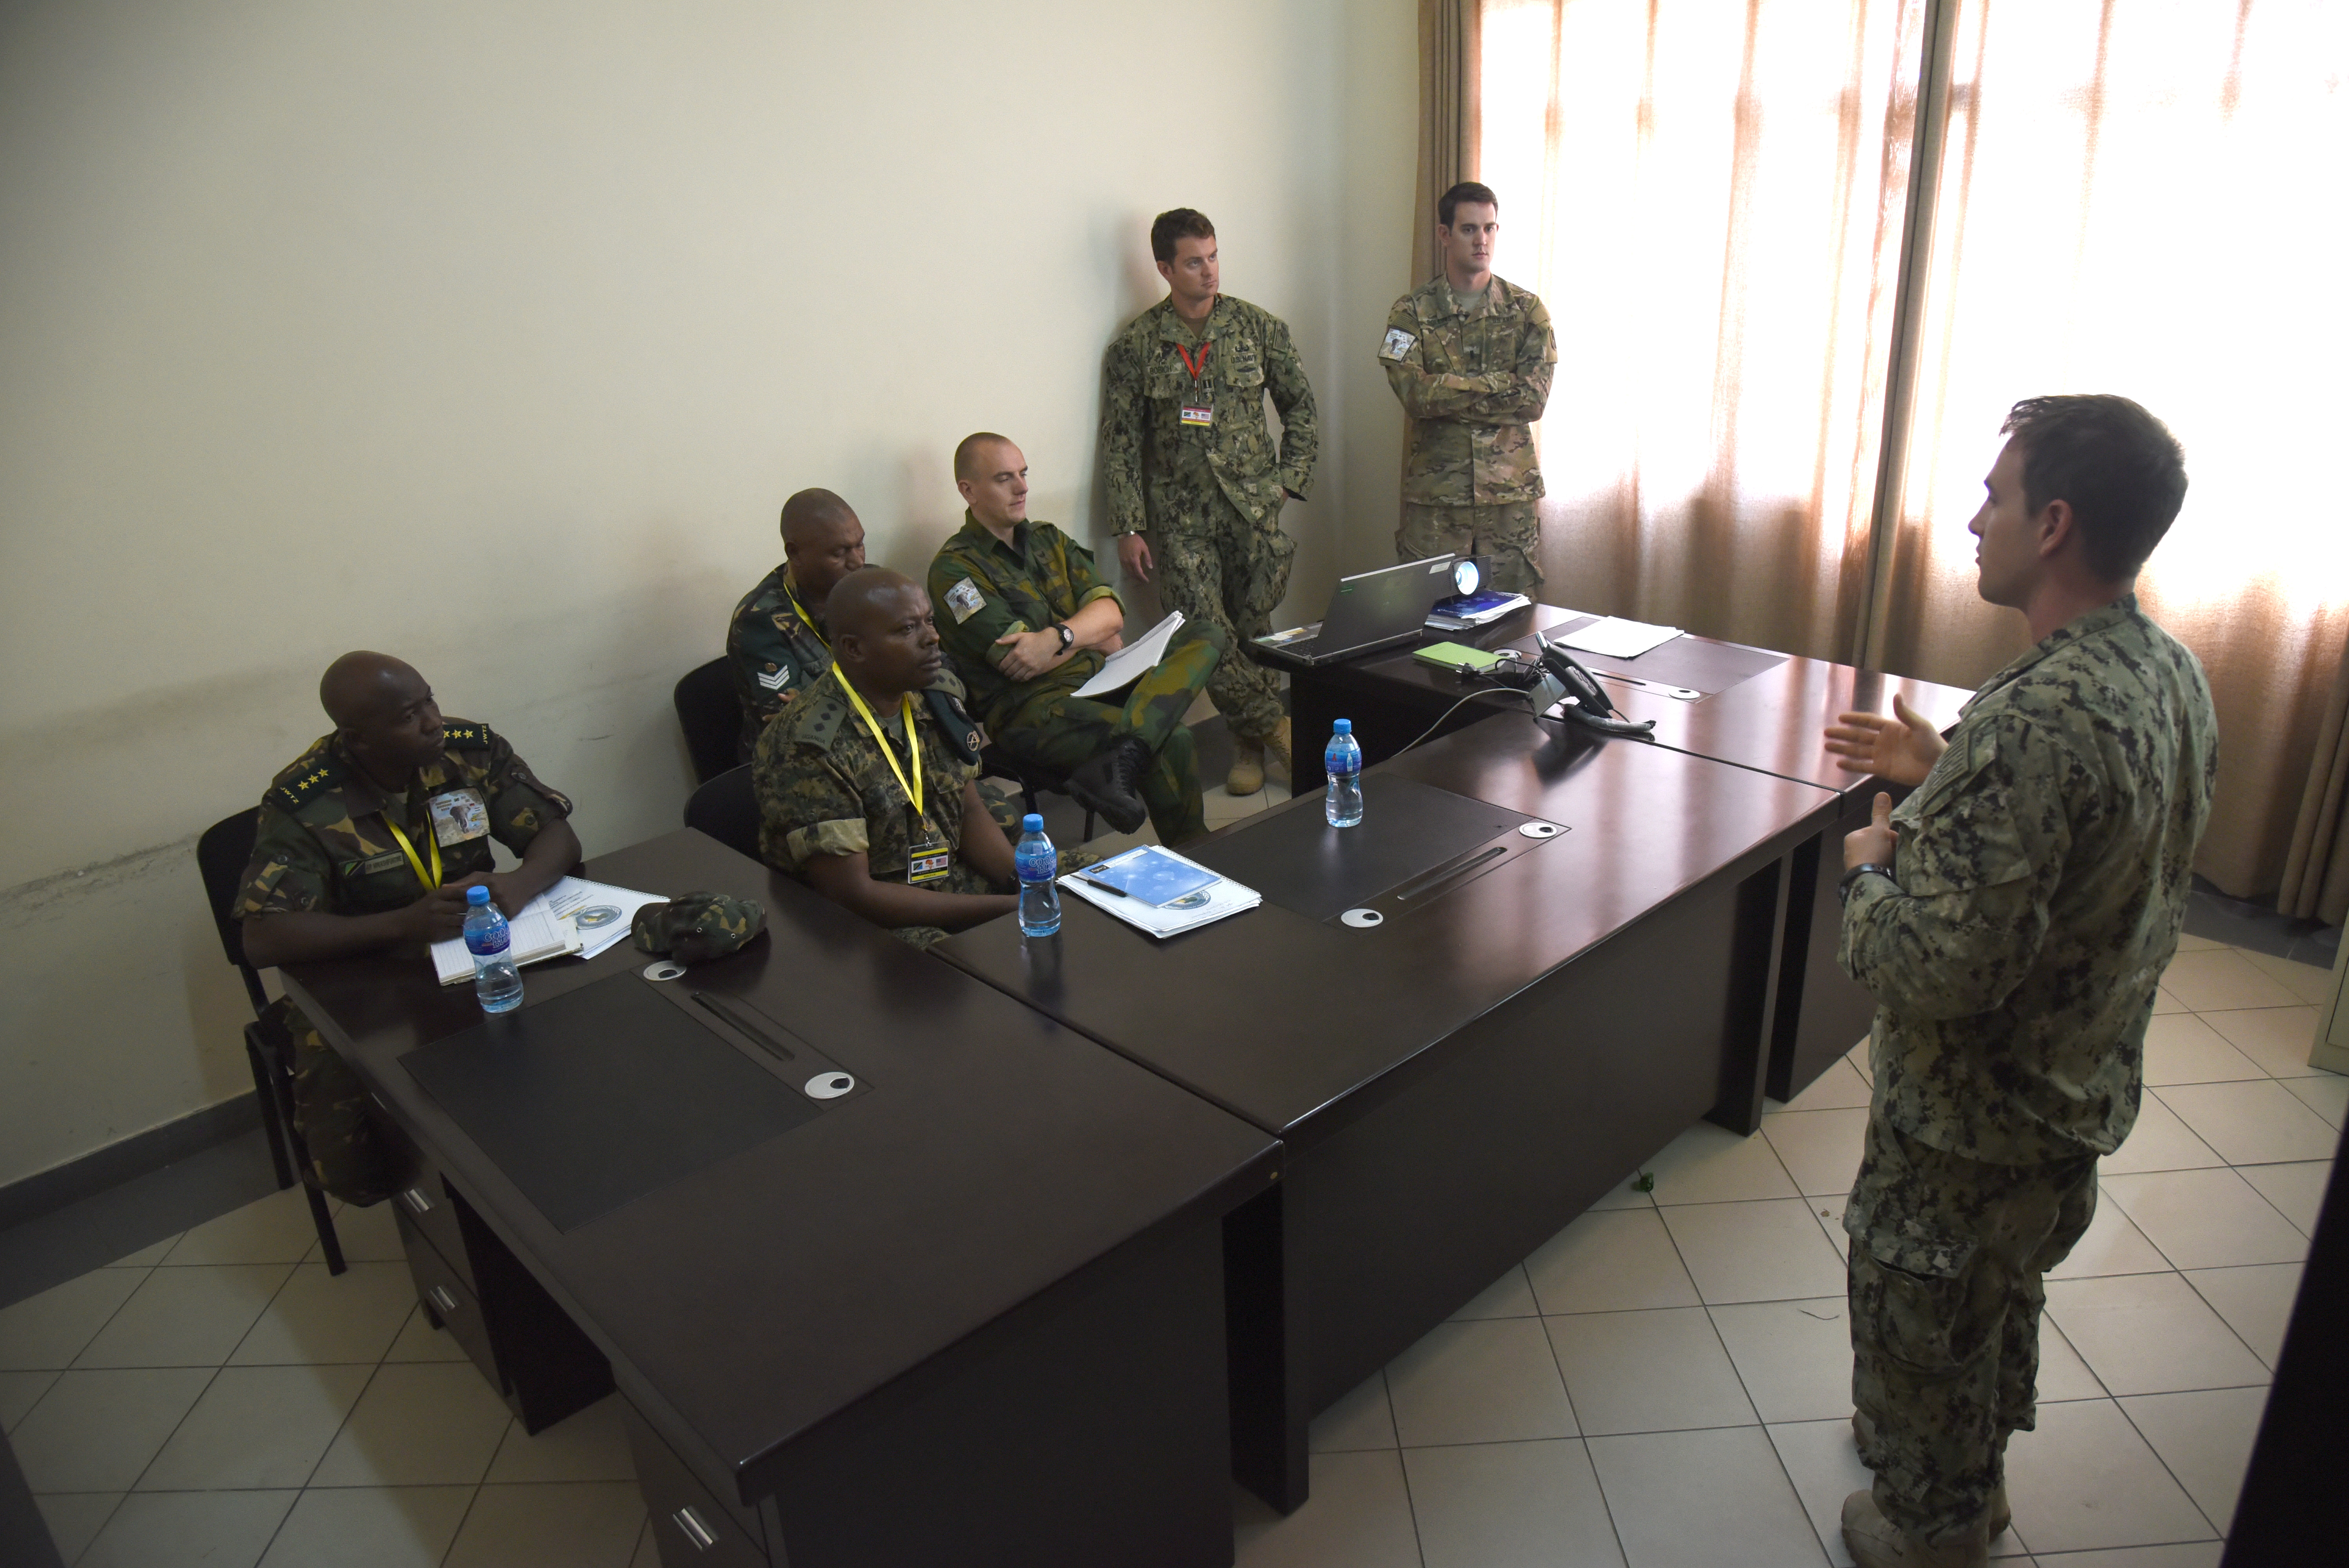 DAR ES SALAAM, Tanzania- U.S. Navy Lt. Allan Lucas, Task Force Sparta explosive ordnance disposal platoon leader at Combined Joint Task Force-Horn Of Africa, instructs a portion of a counter-improvised explosive device course to Dutch, Tanzanian and Ugandan exercise participants during Eastern Accord 2016, at the Tanzanian Peacekeeping Training Centre, in Dar es Salaam, Tanzania. EA16 is an annual, combined, joint military exercise that brings together partner nations to practice and demonstrate proficiency in conducting peacekeeping operations. (U.S. Air Force photo by Staff Sgt. Tiffany DeNault)